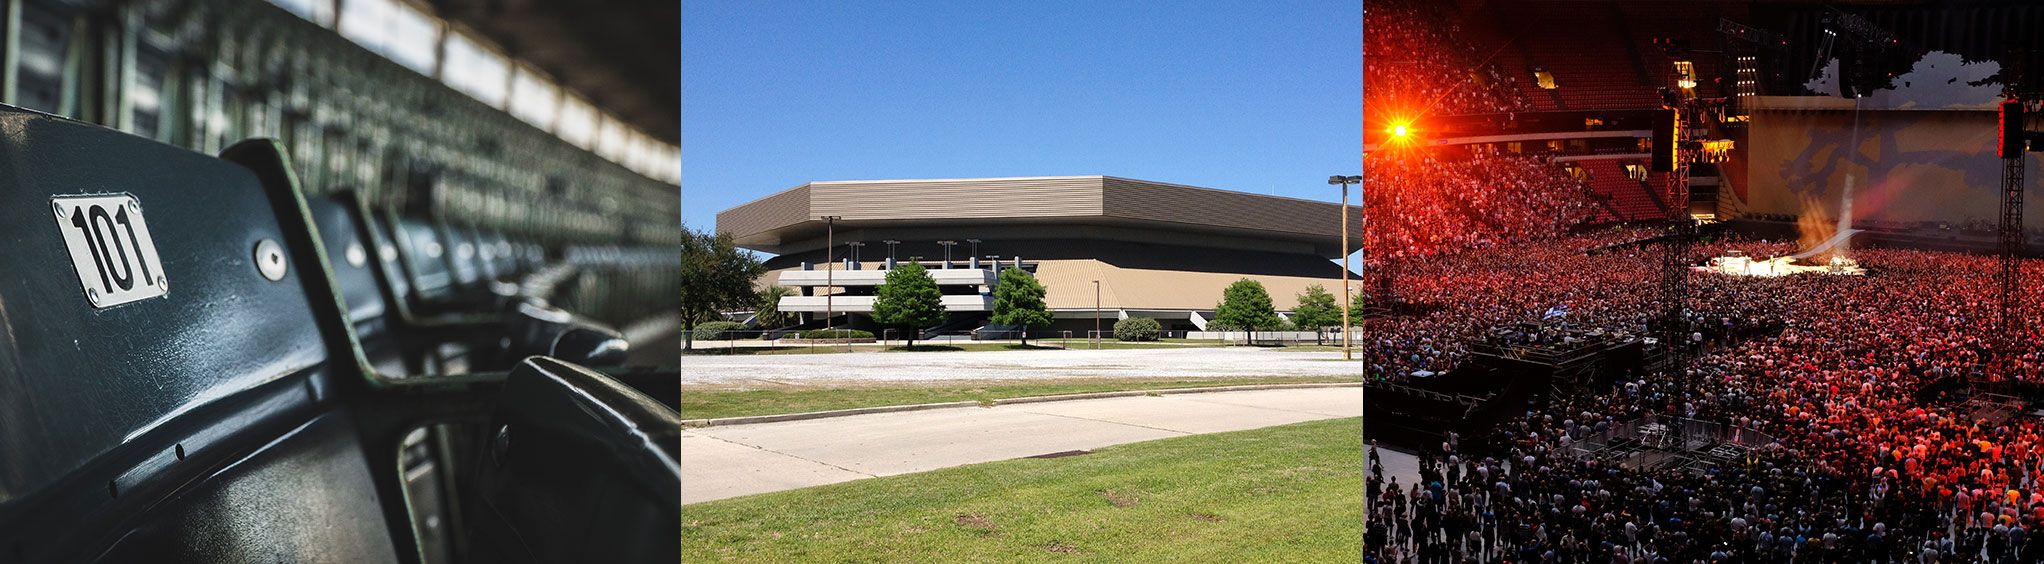 New Orleans Lakefront Arena in New Orleans